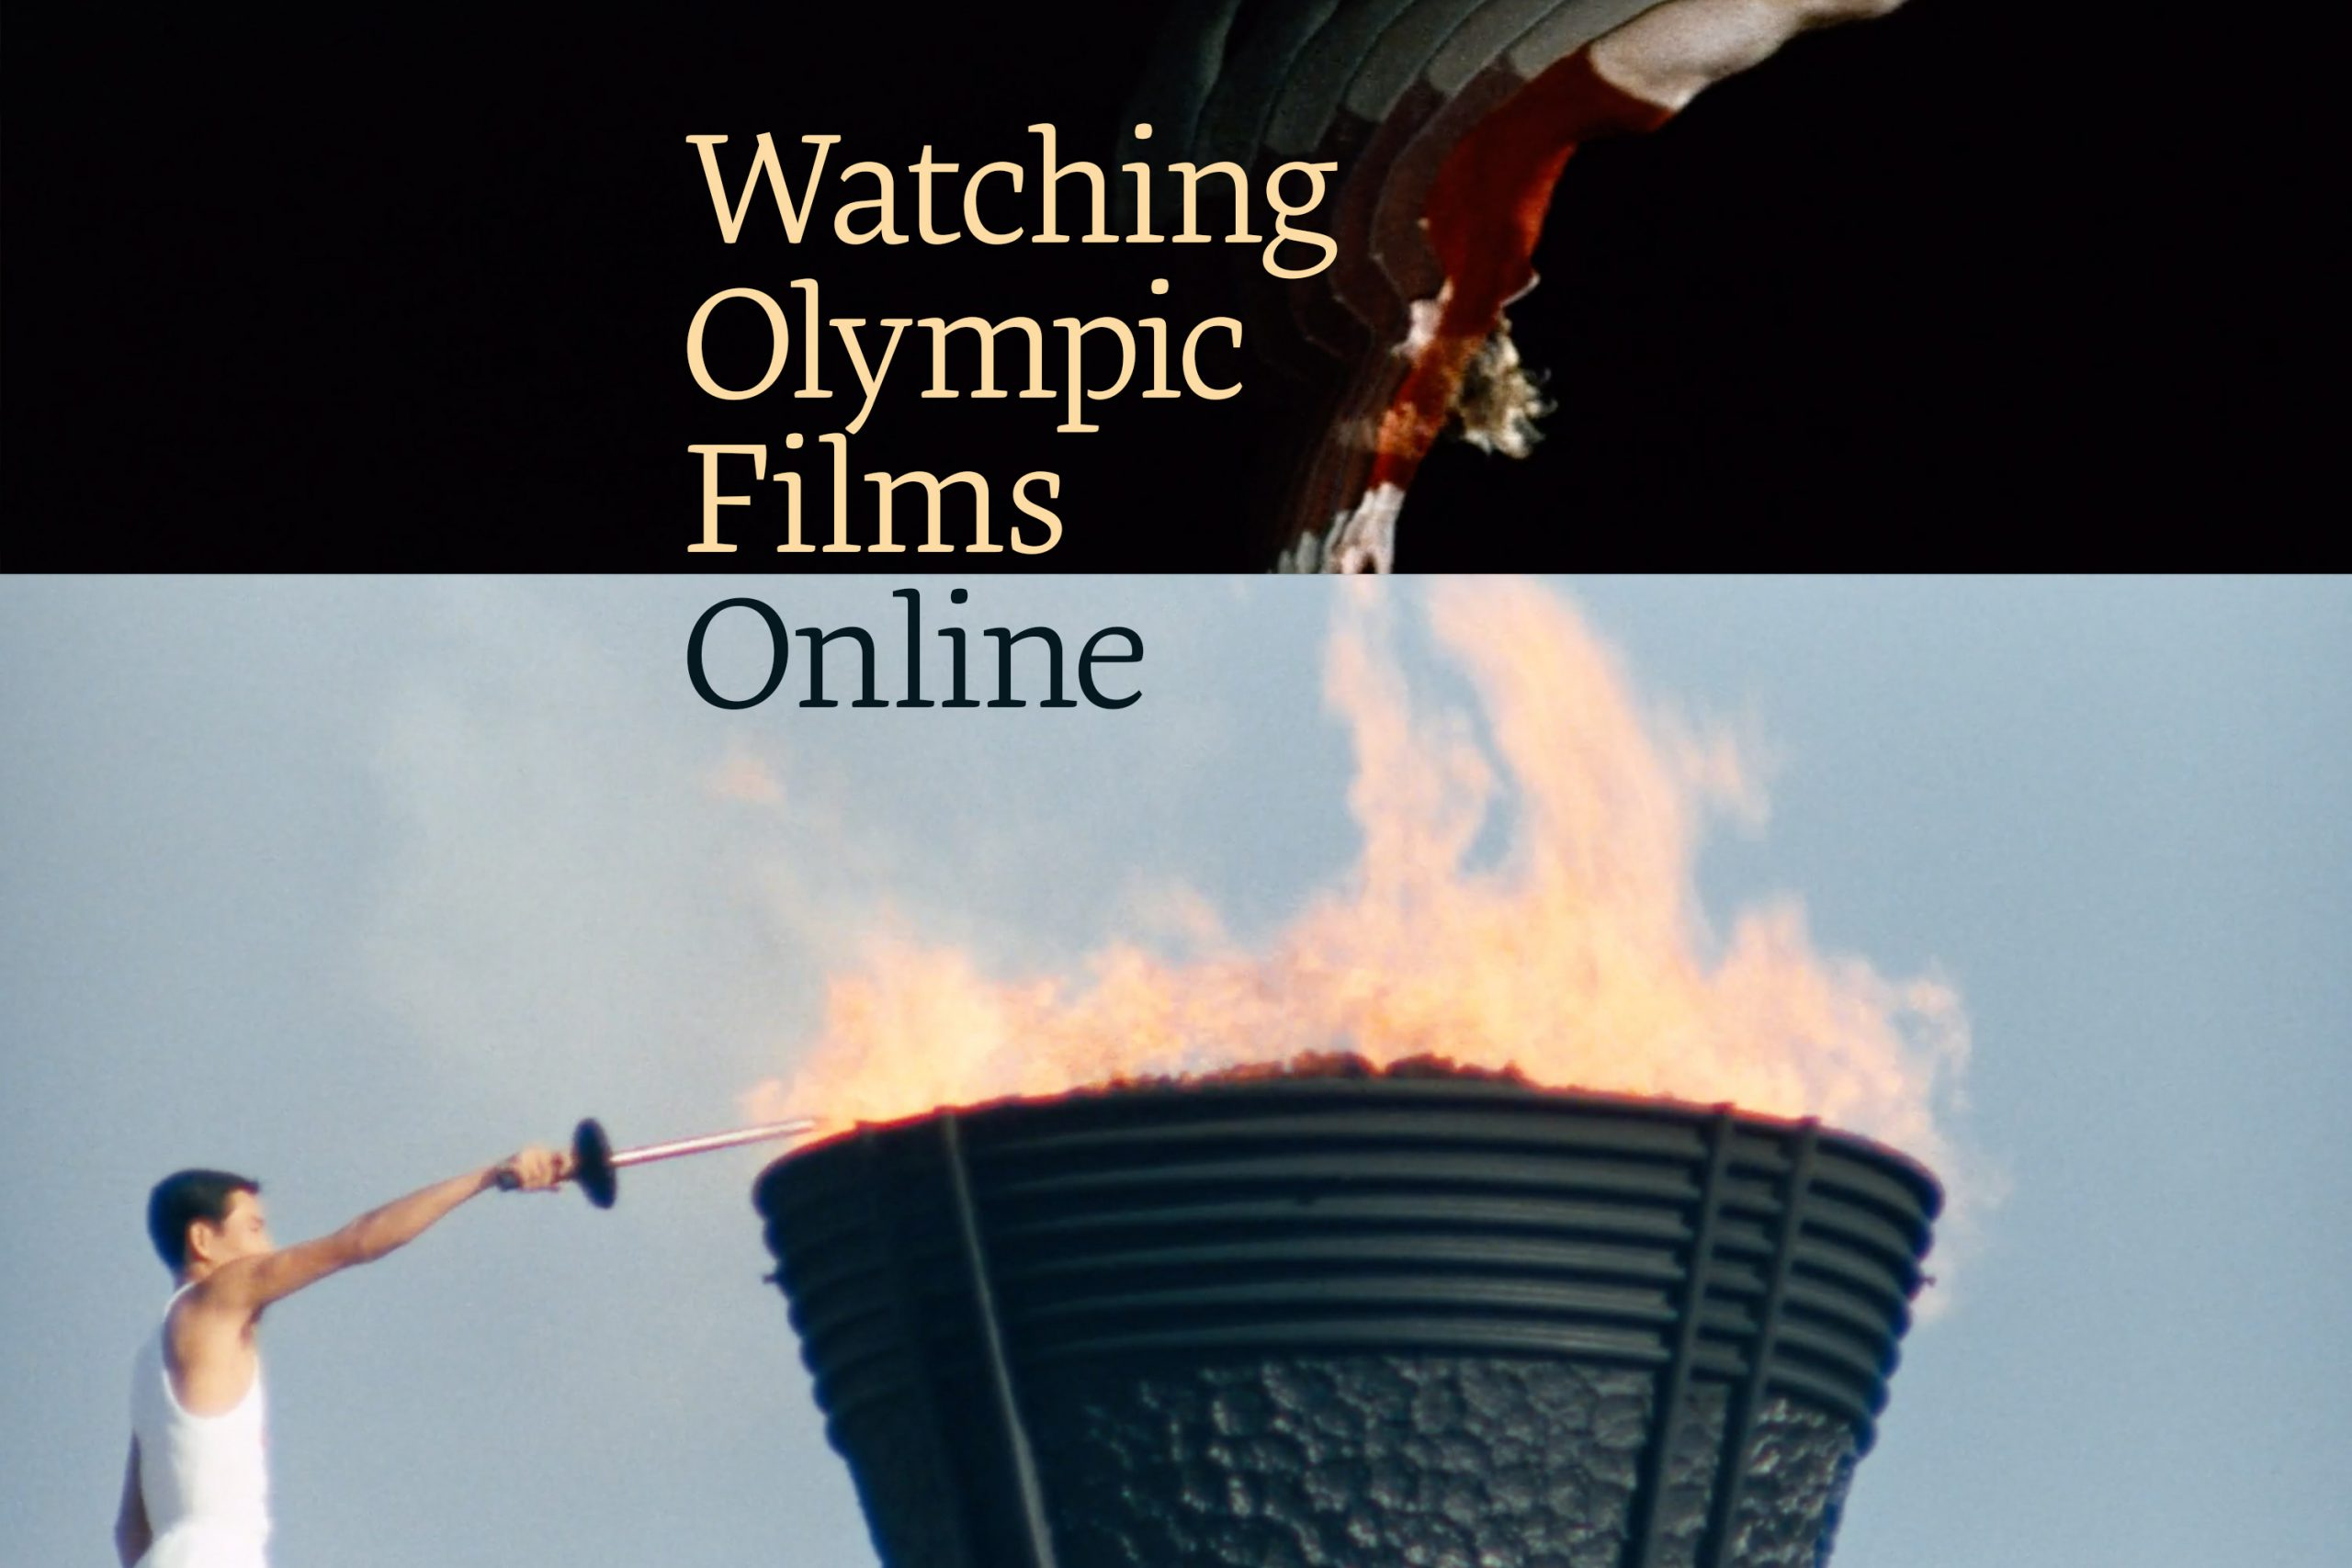 Watching Olympic Films Online